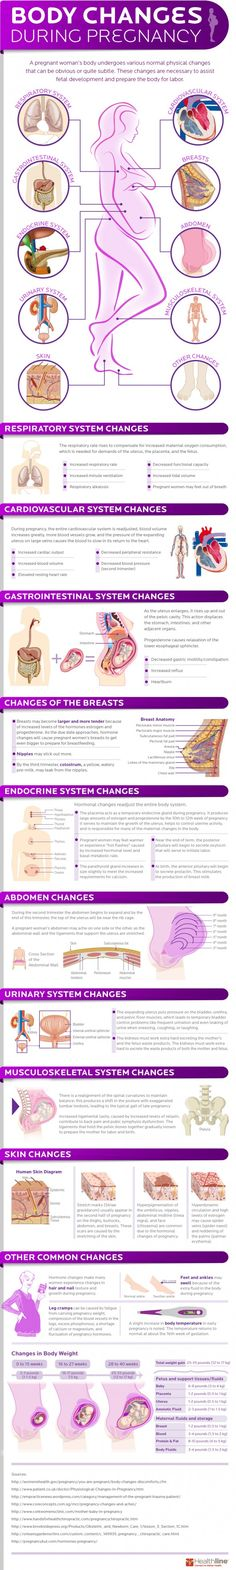 How a Woman's Body Changes During Pregnancy (Infographic). Body Changes During Pregnancy Week By Week Baby On The Way, Baby Kind, Baby Love, Pregnancy Info, Pregnancy Health, Early Pregnancy, Pregnancy Anatomy, Stages Of Pregnancy, Pregnancy Chart